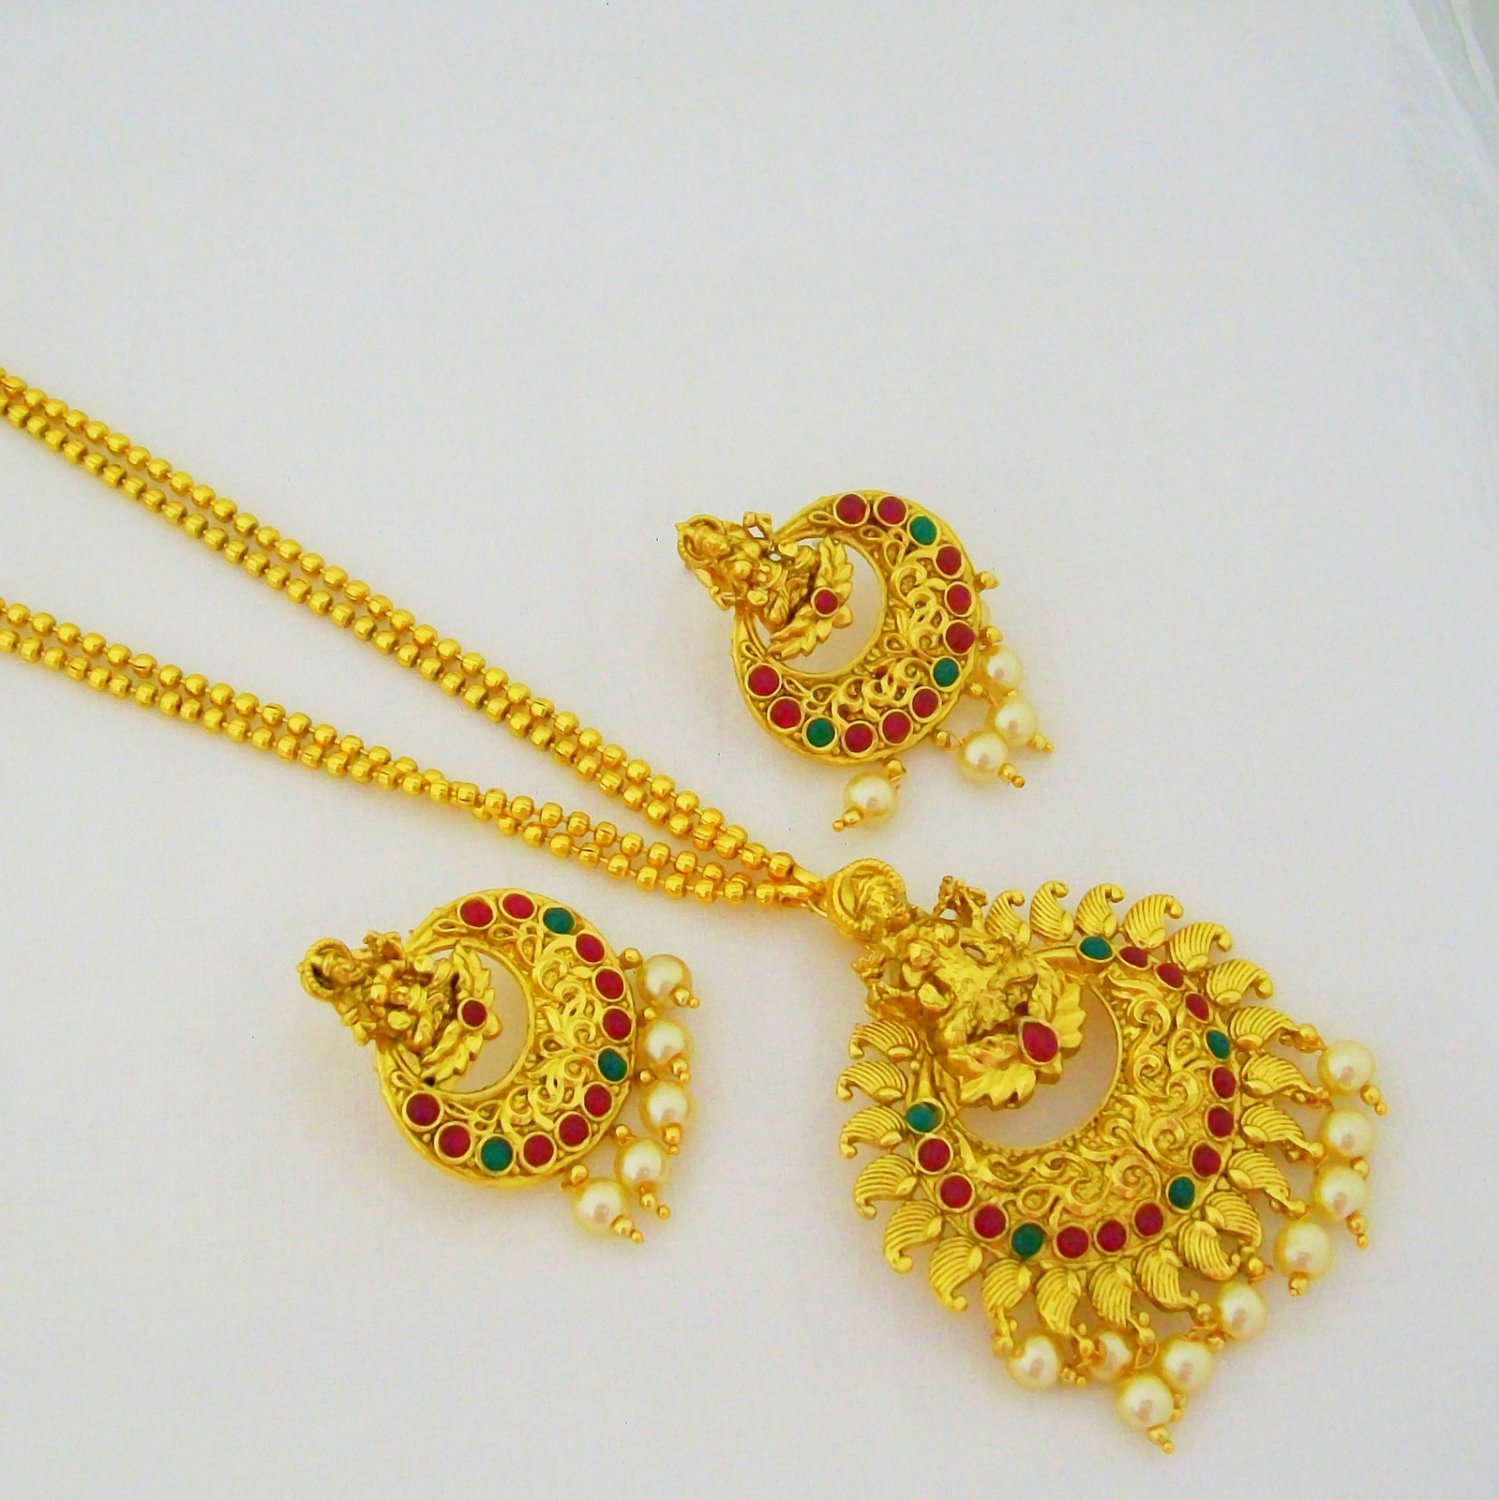 Traditional Gold Plated Laxmi Design Engraved Chain Pendant Long Necklace Jewellery Set